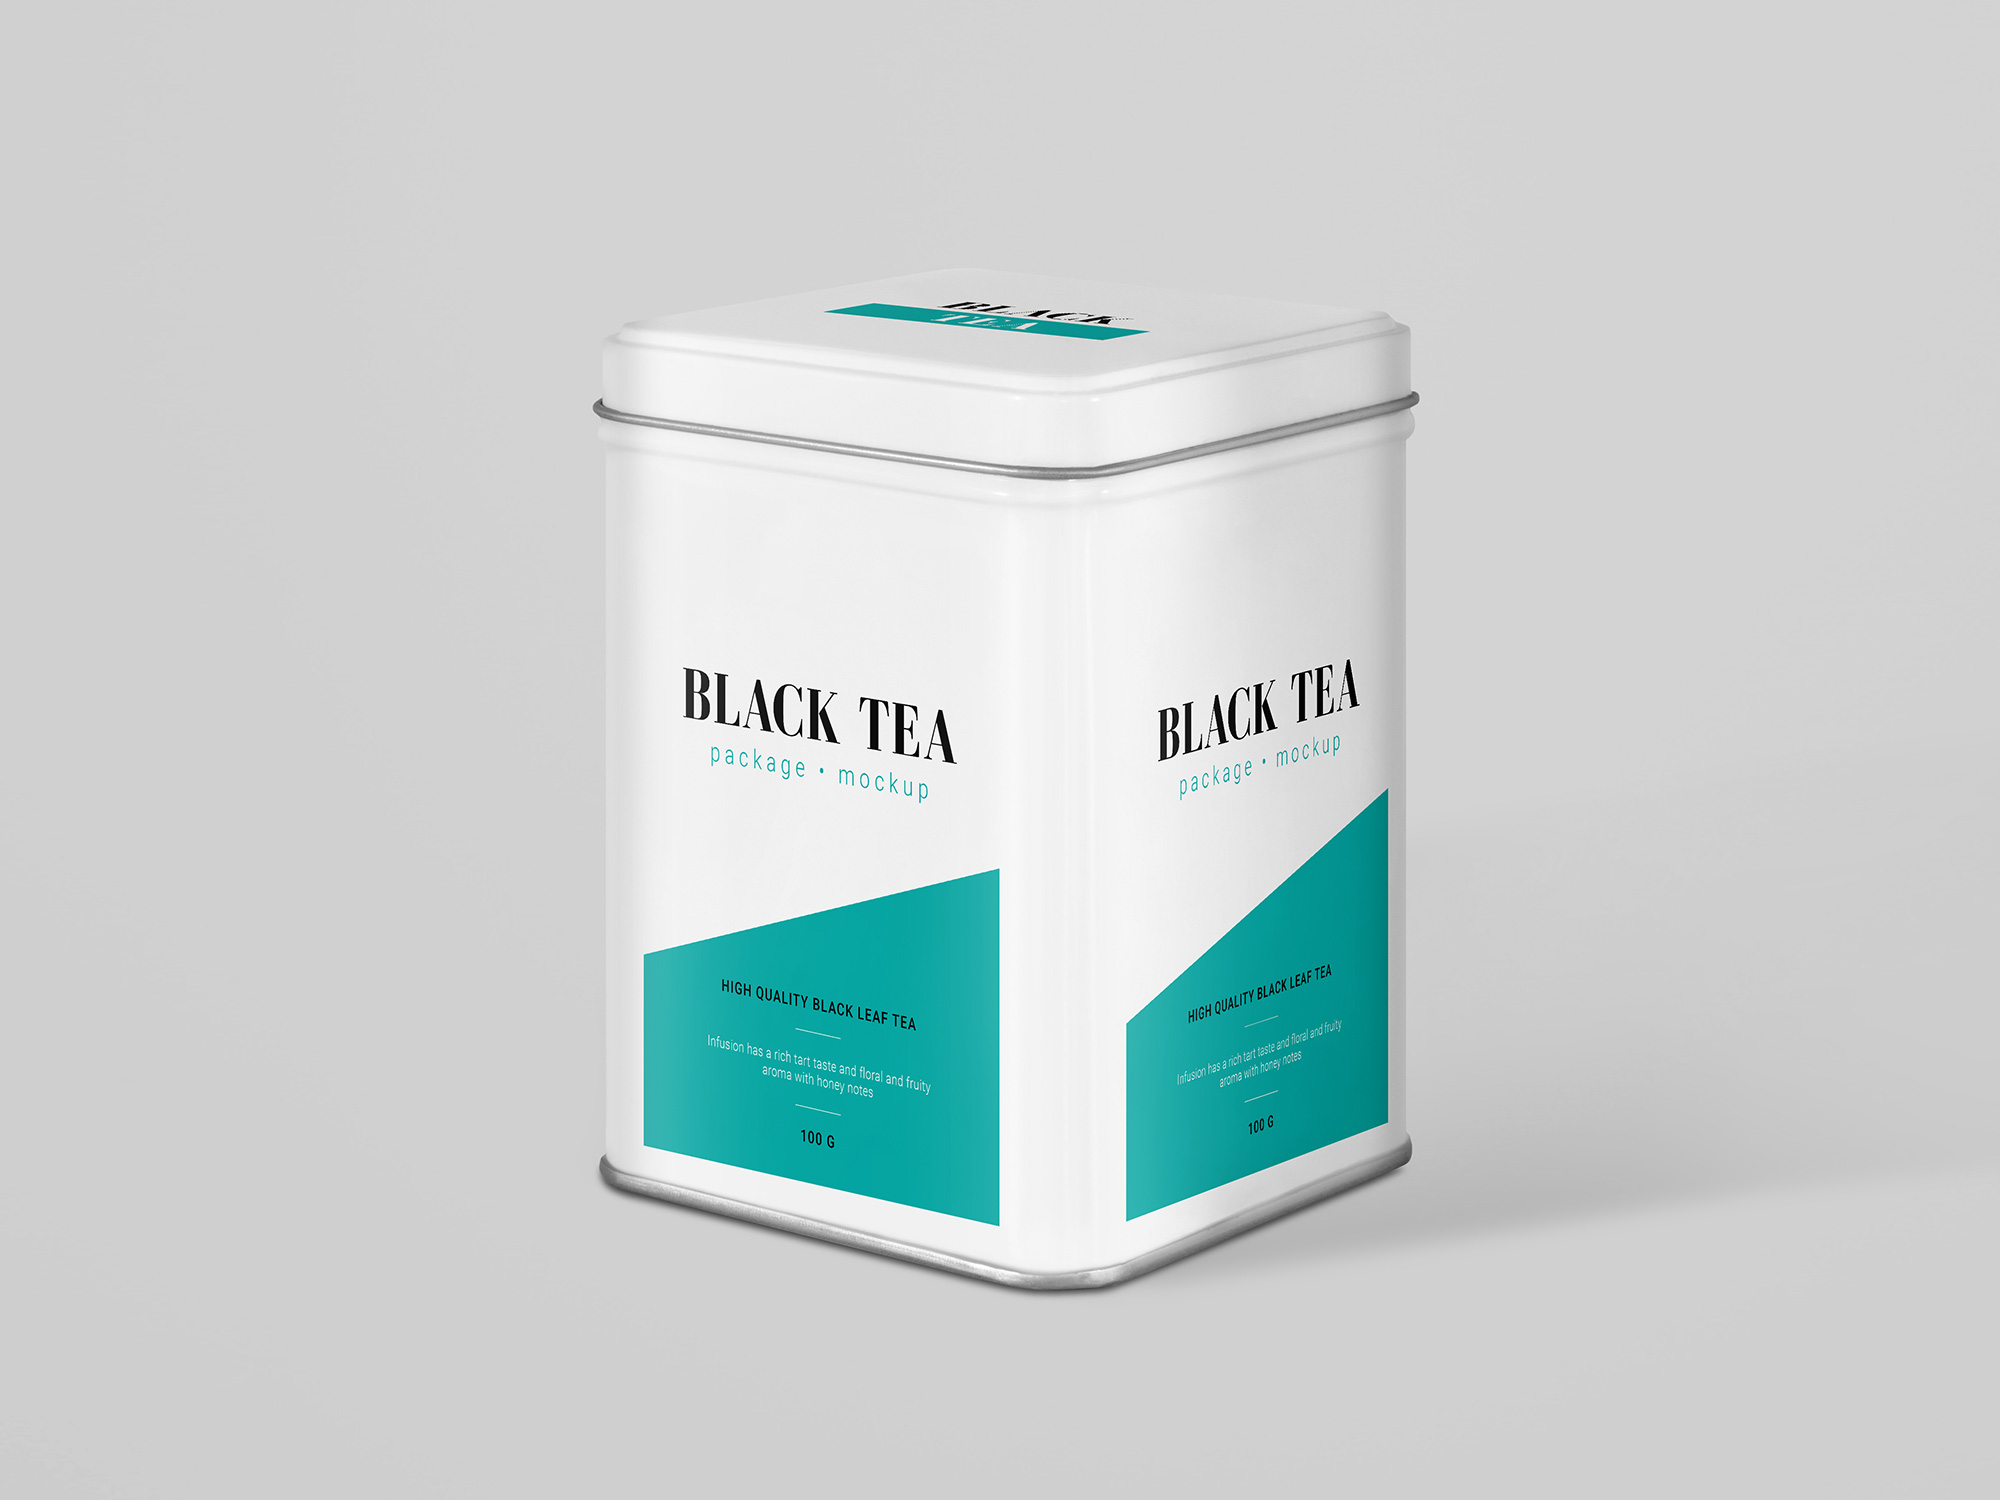 Perspective Tea Can Package Mockup